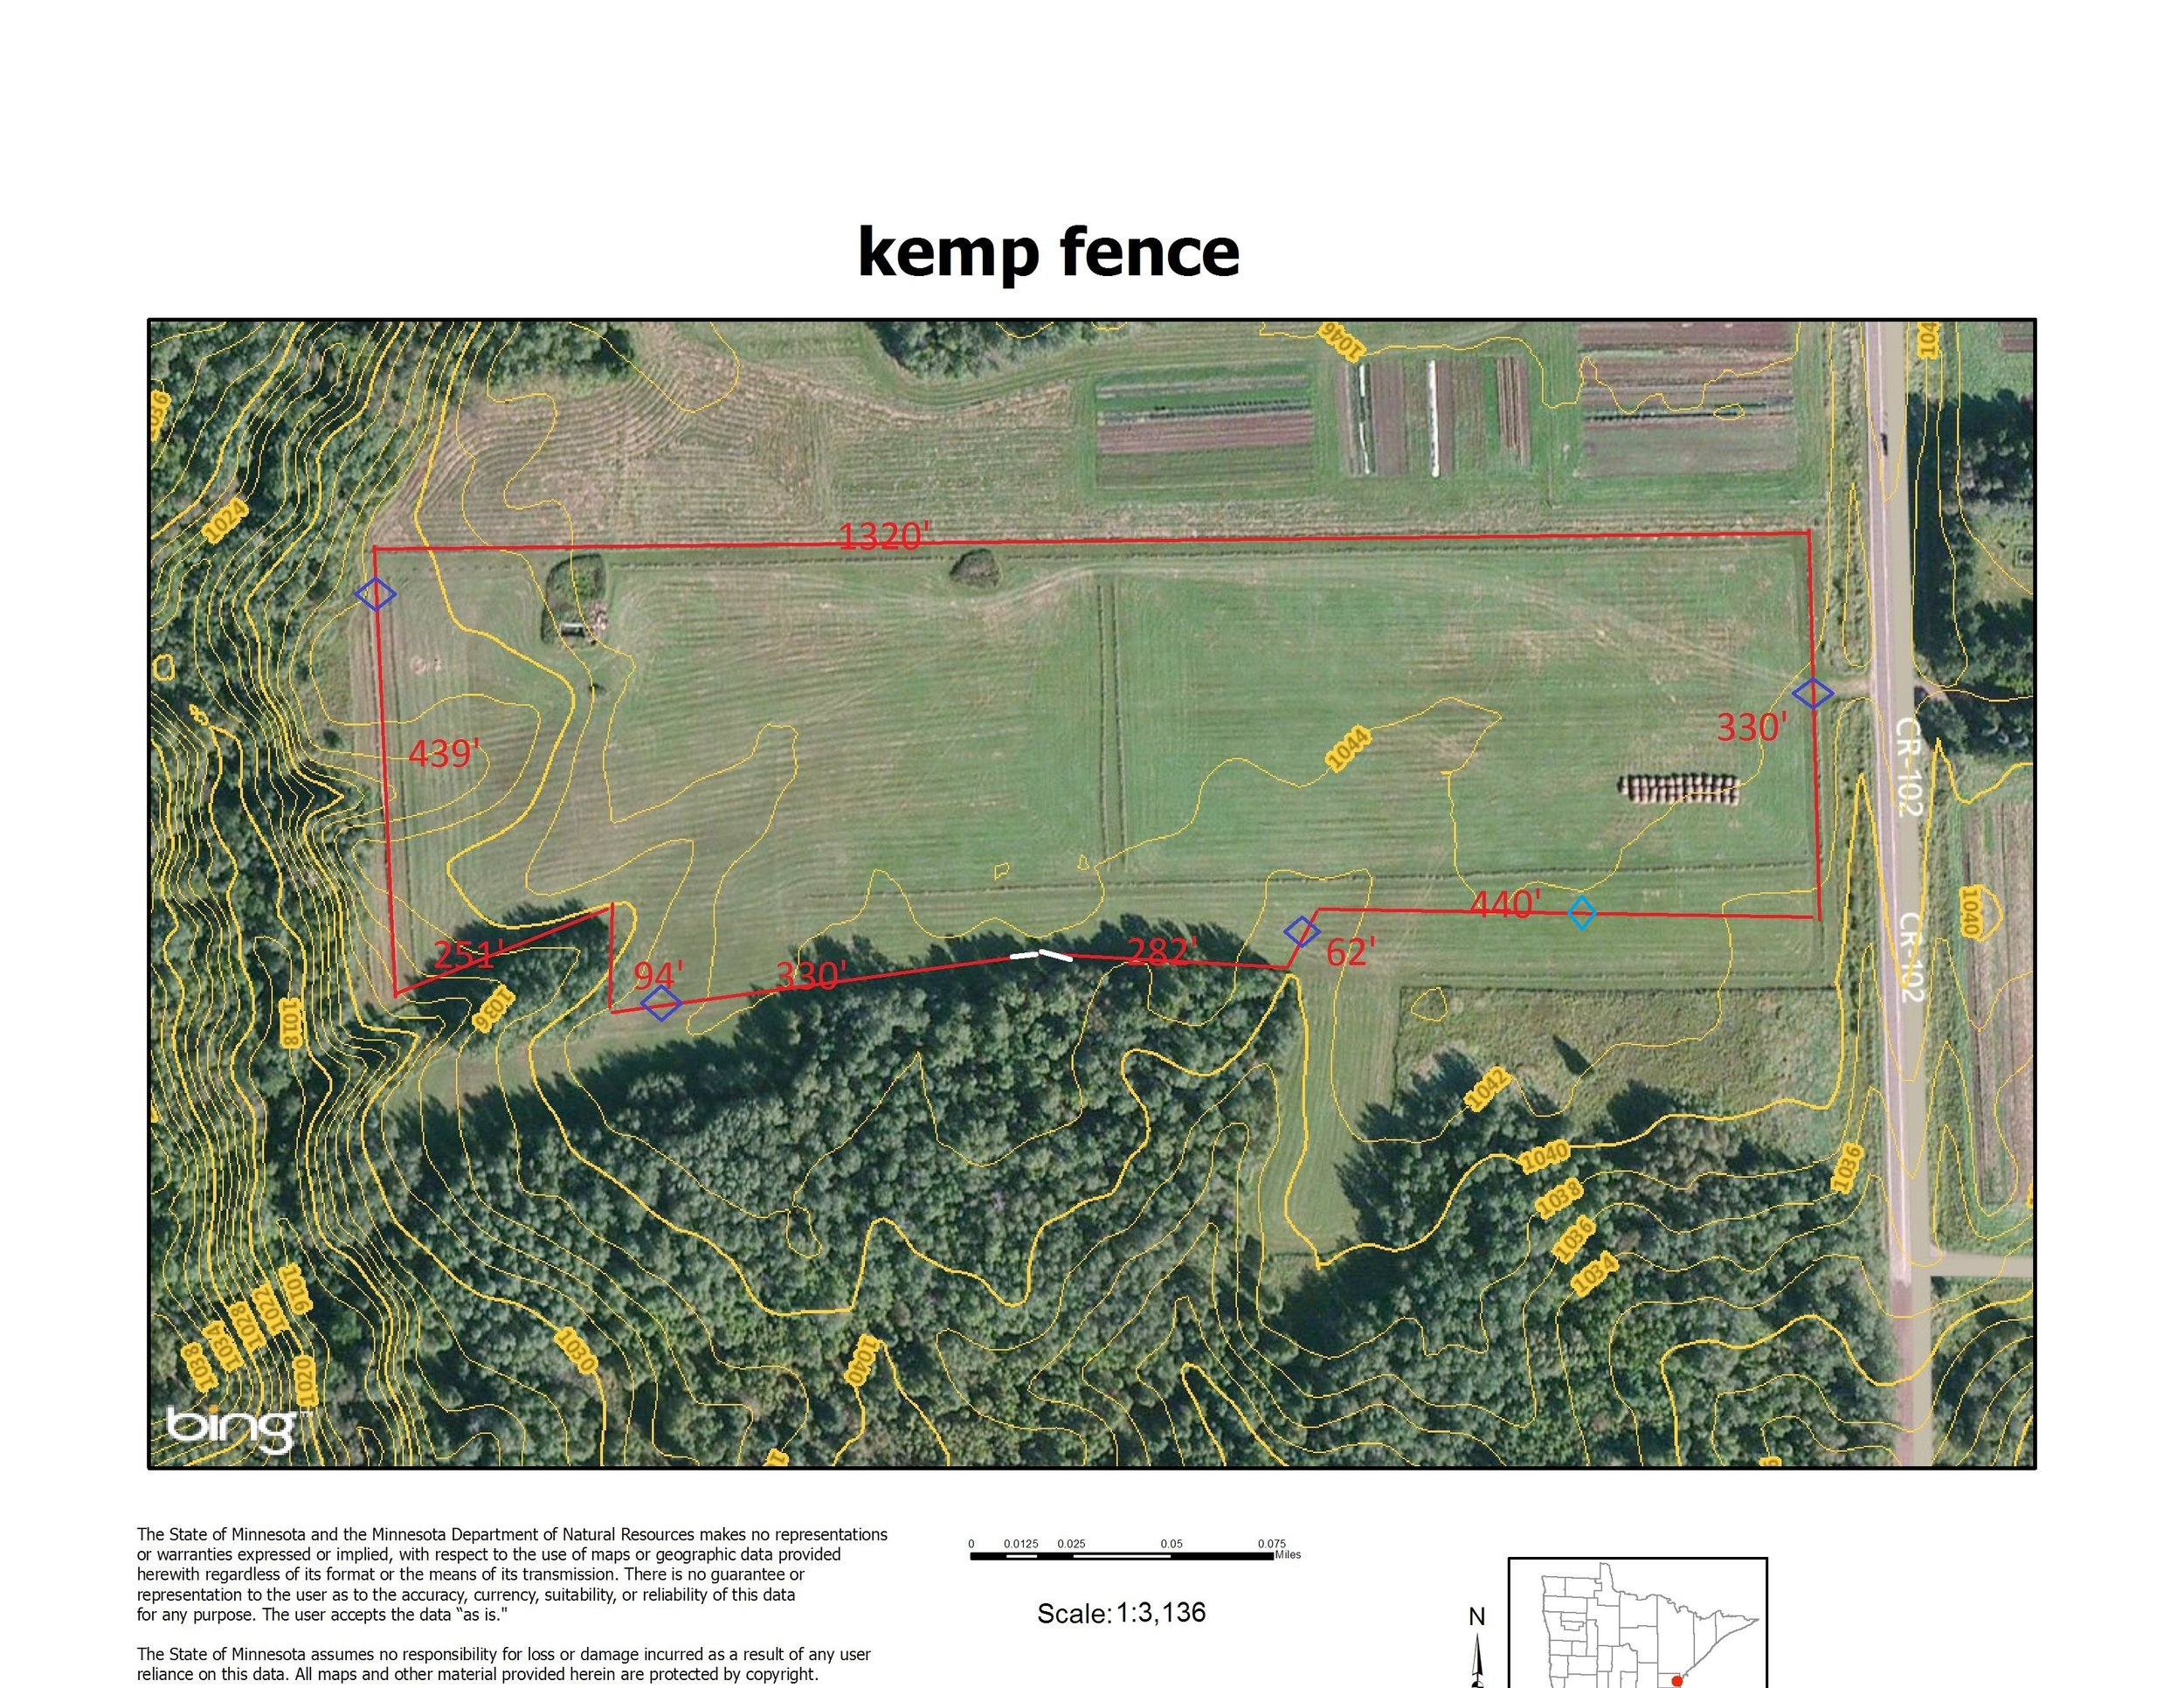 The fence plan